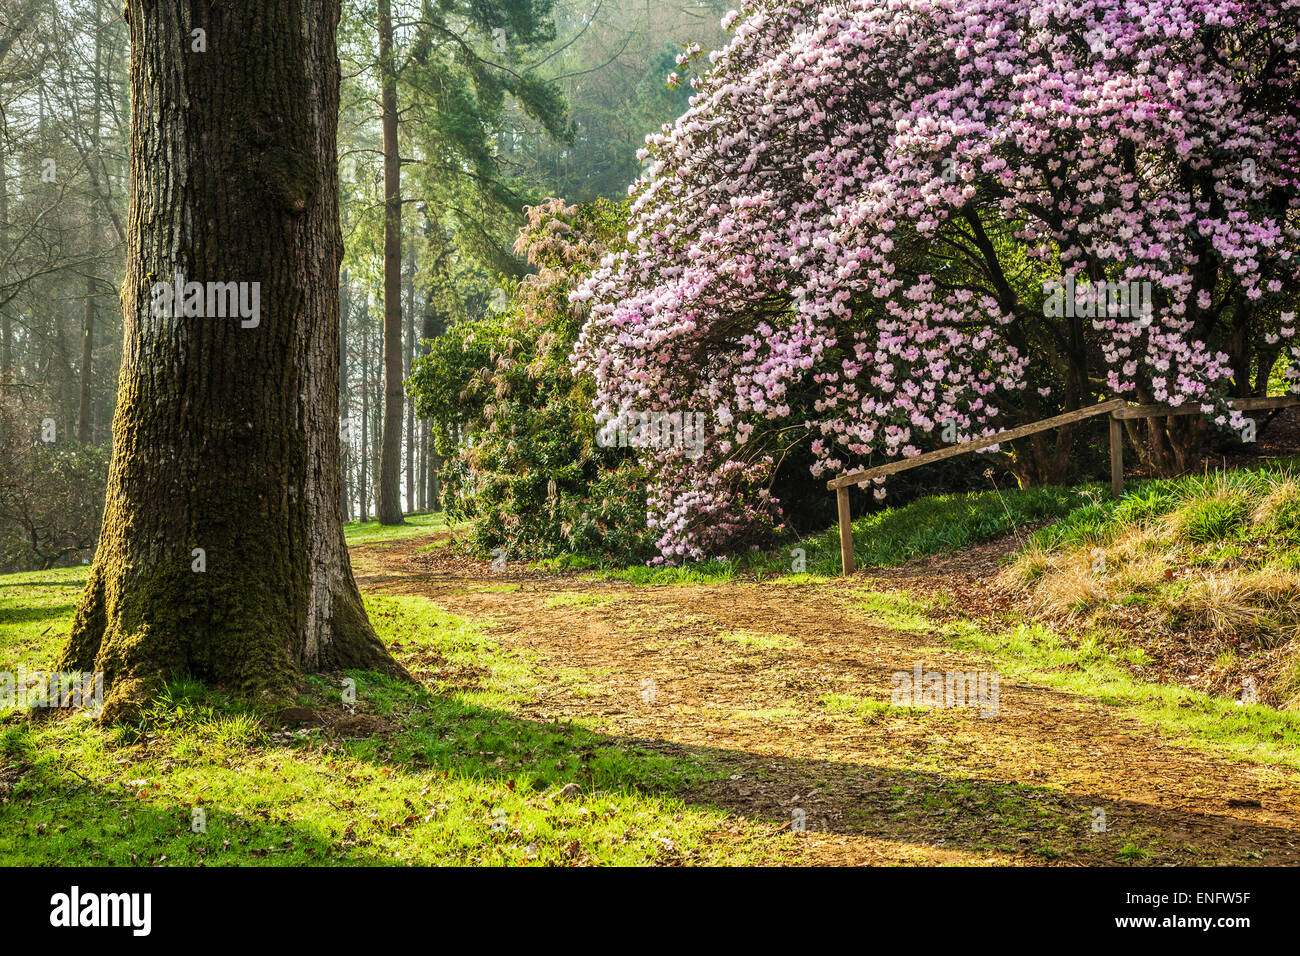 Rhododendron oreodoxa var. fargesii at the Bowood Estate in Wiltshire. - Stock Image